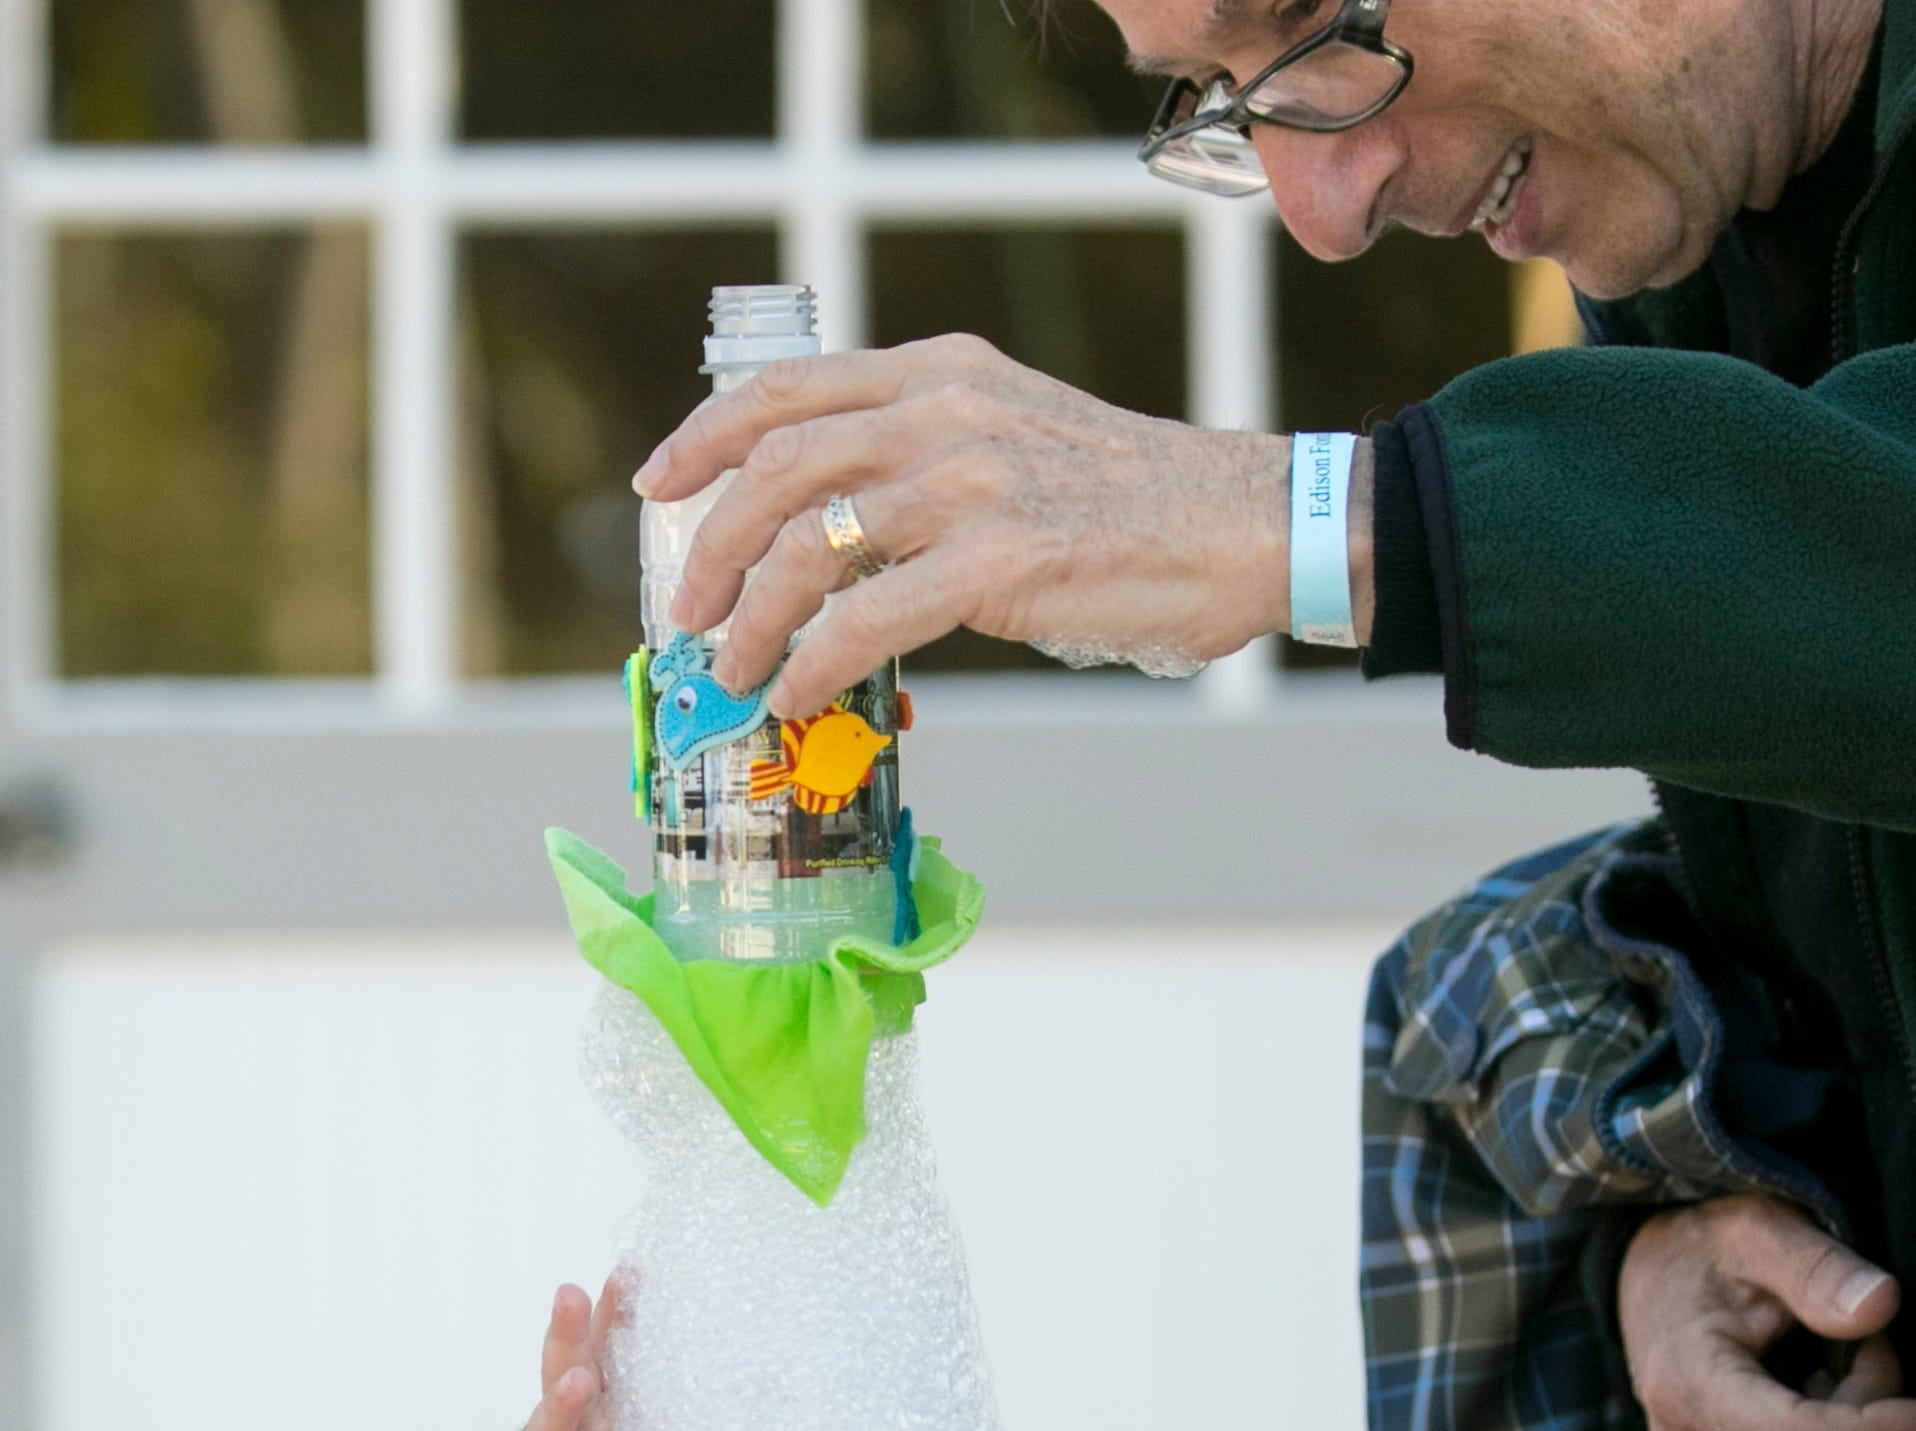 Goergie Auster-Klein, 3, reacts to a snake bubble made by his grandpa Douglas Auster during the monthly Emerging Inventors program on Thursday, January 17, 2019, at the Edison & Ford Winter Estates in Fort Myers. This month's program was called Bouncing Bubbles. The next program, which is for children 5 and younger, is February 21 at 9:30 am, and is called is LEGO Art and Engineering.